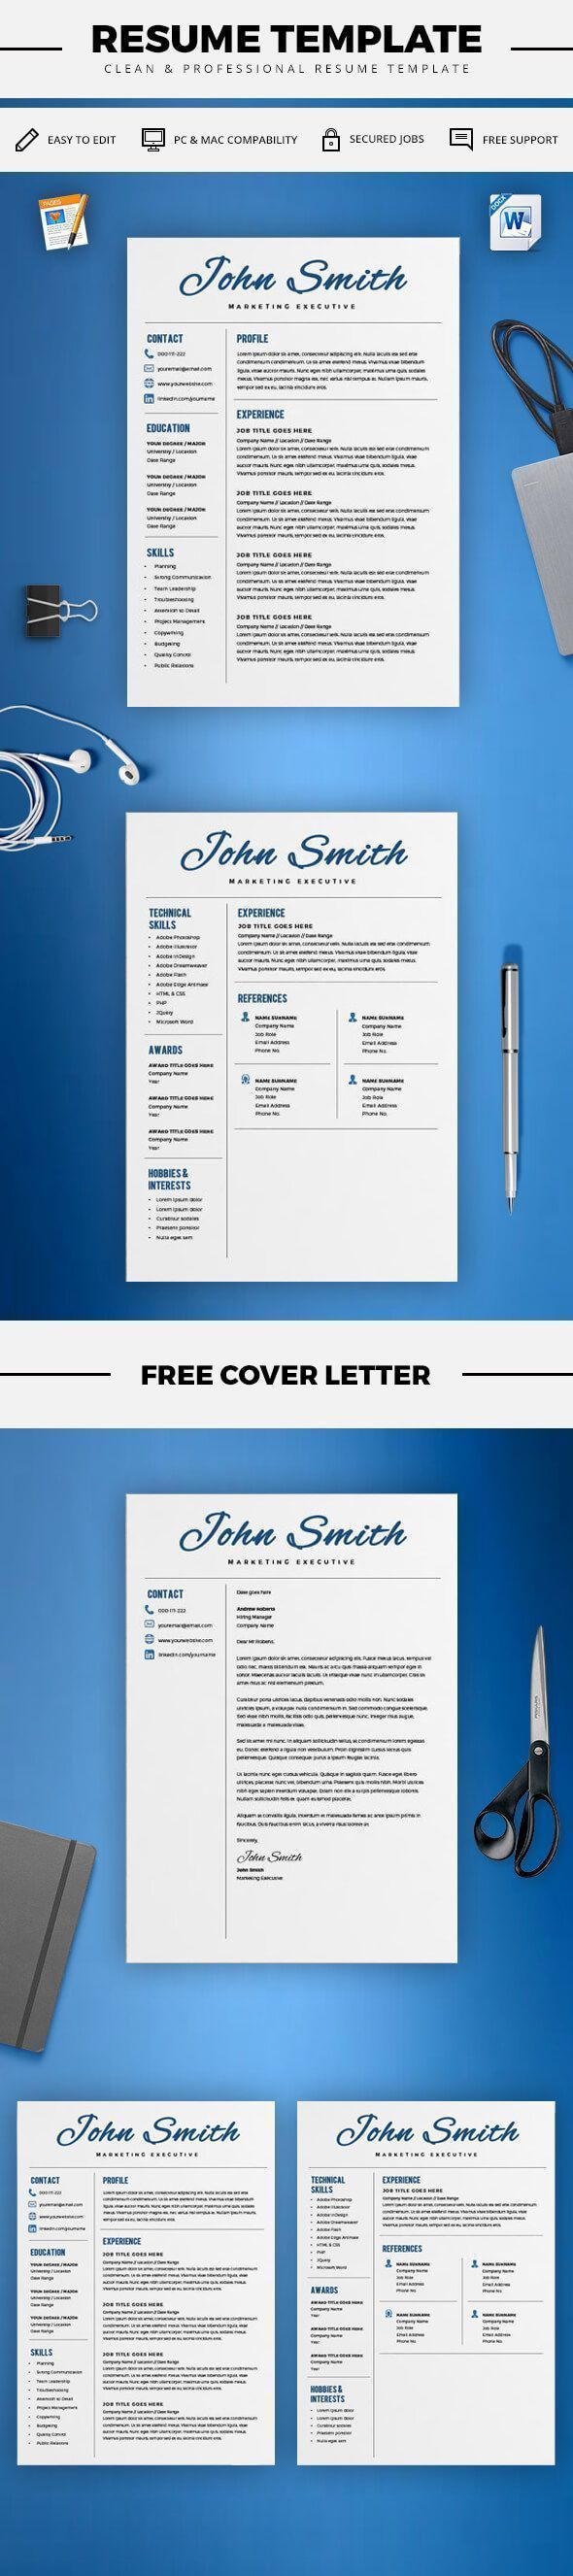 how to write a perfect cover letter%0A Best     Best resume ideas on Pinterest   Best resume template  My resume  builder and Words for resume